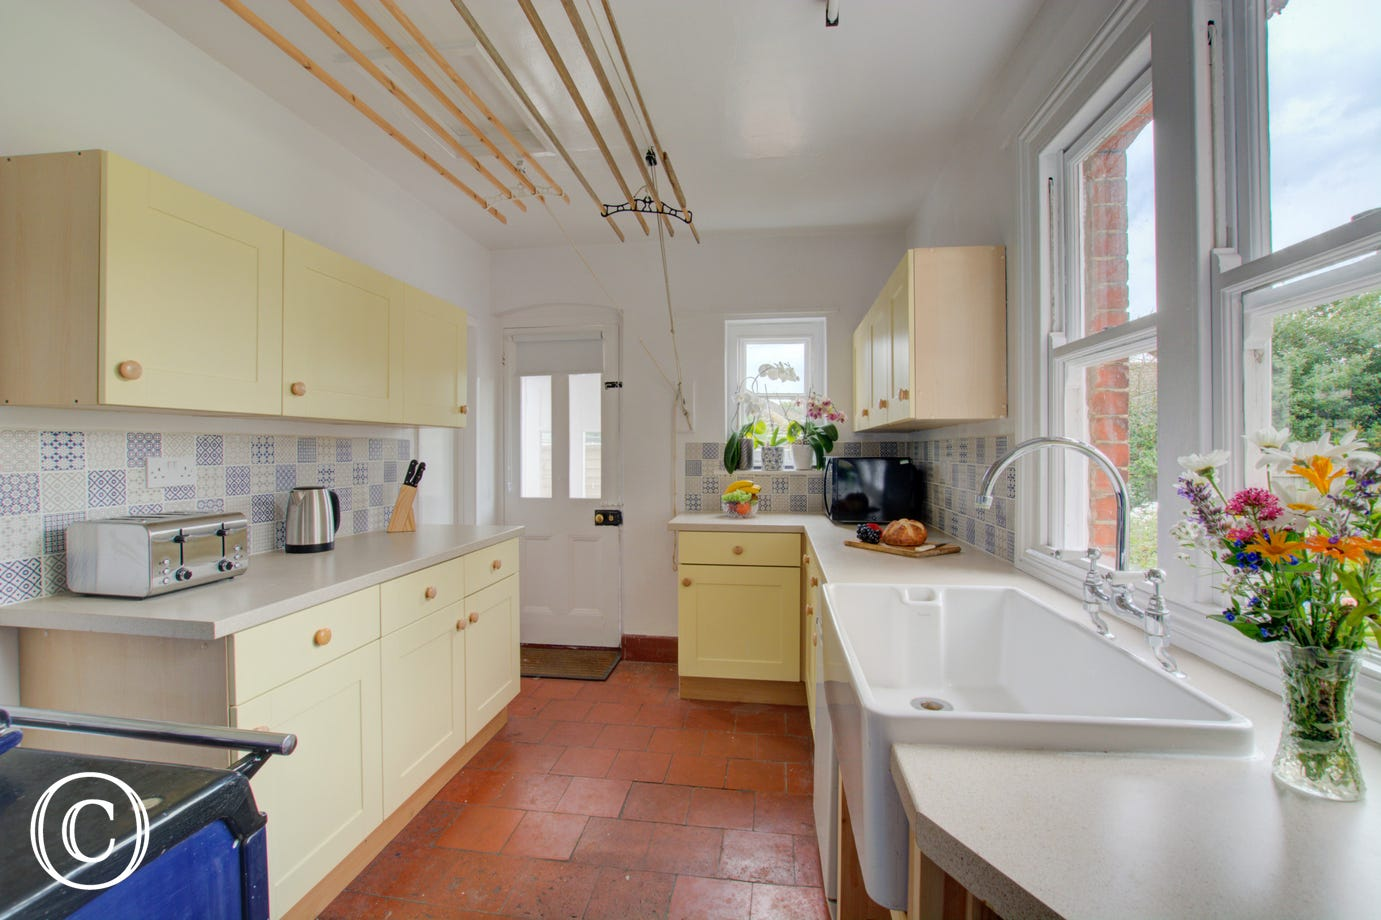 Kitchen with fitted units & Aga